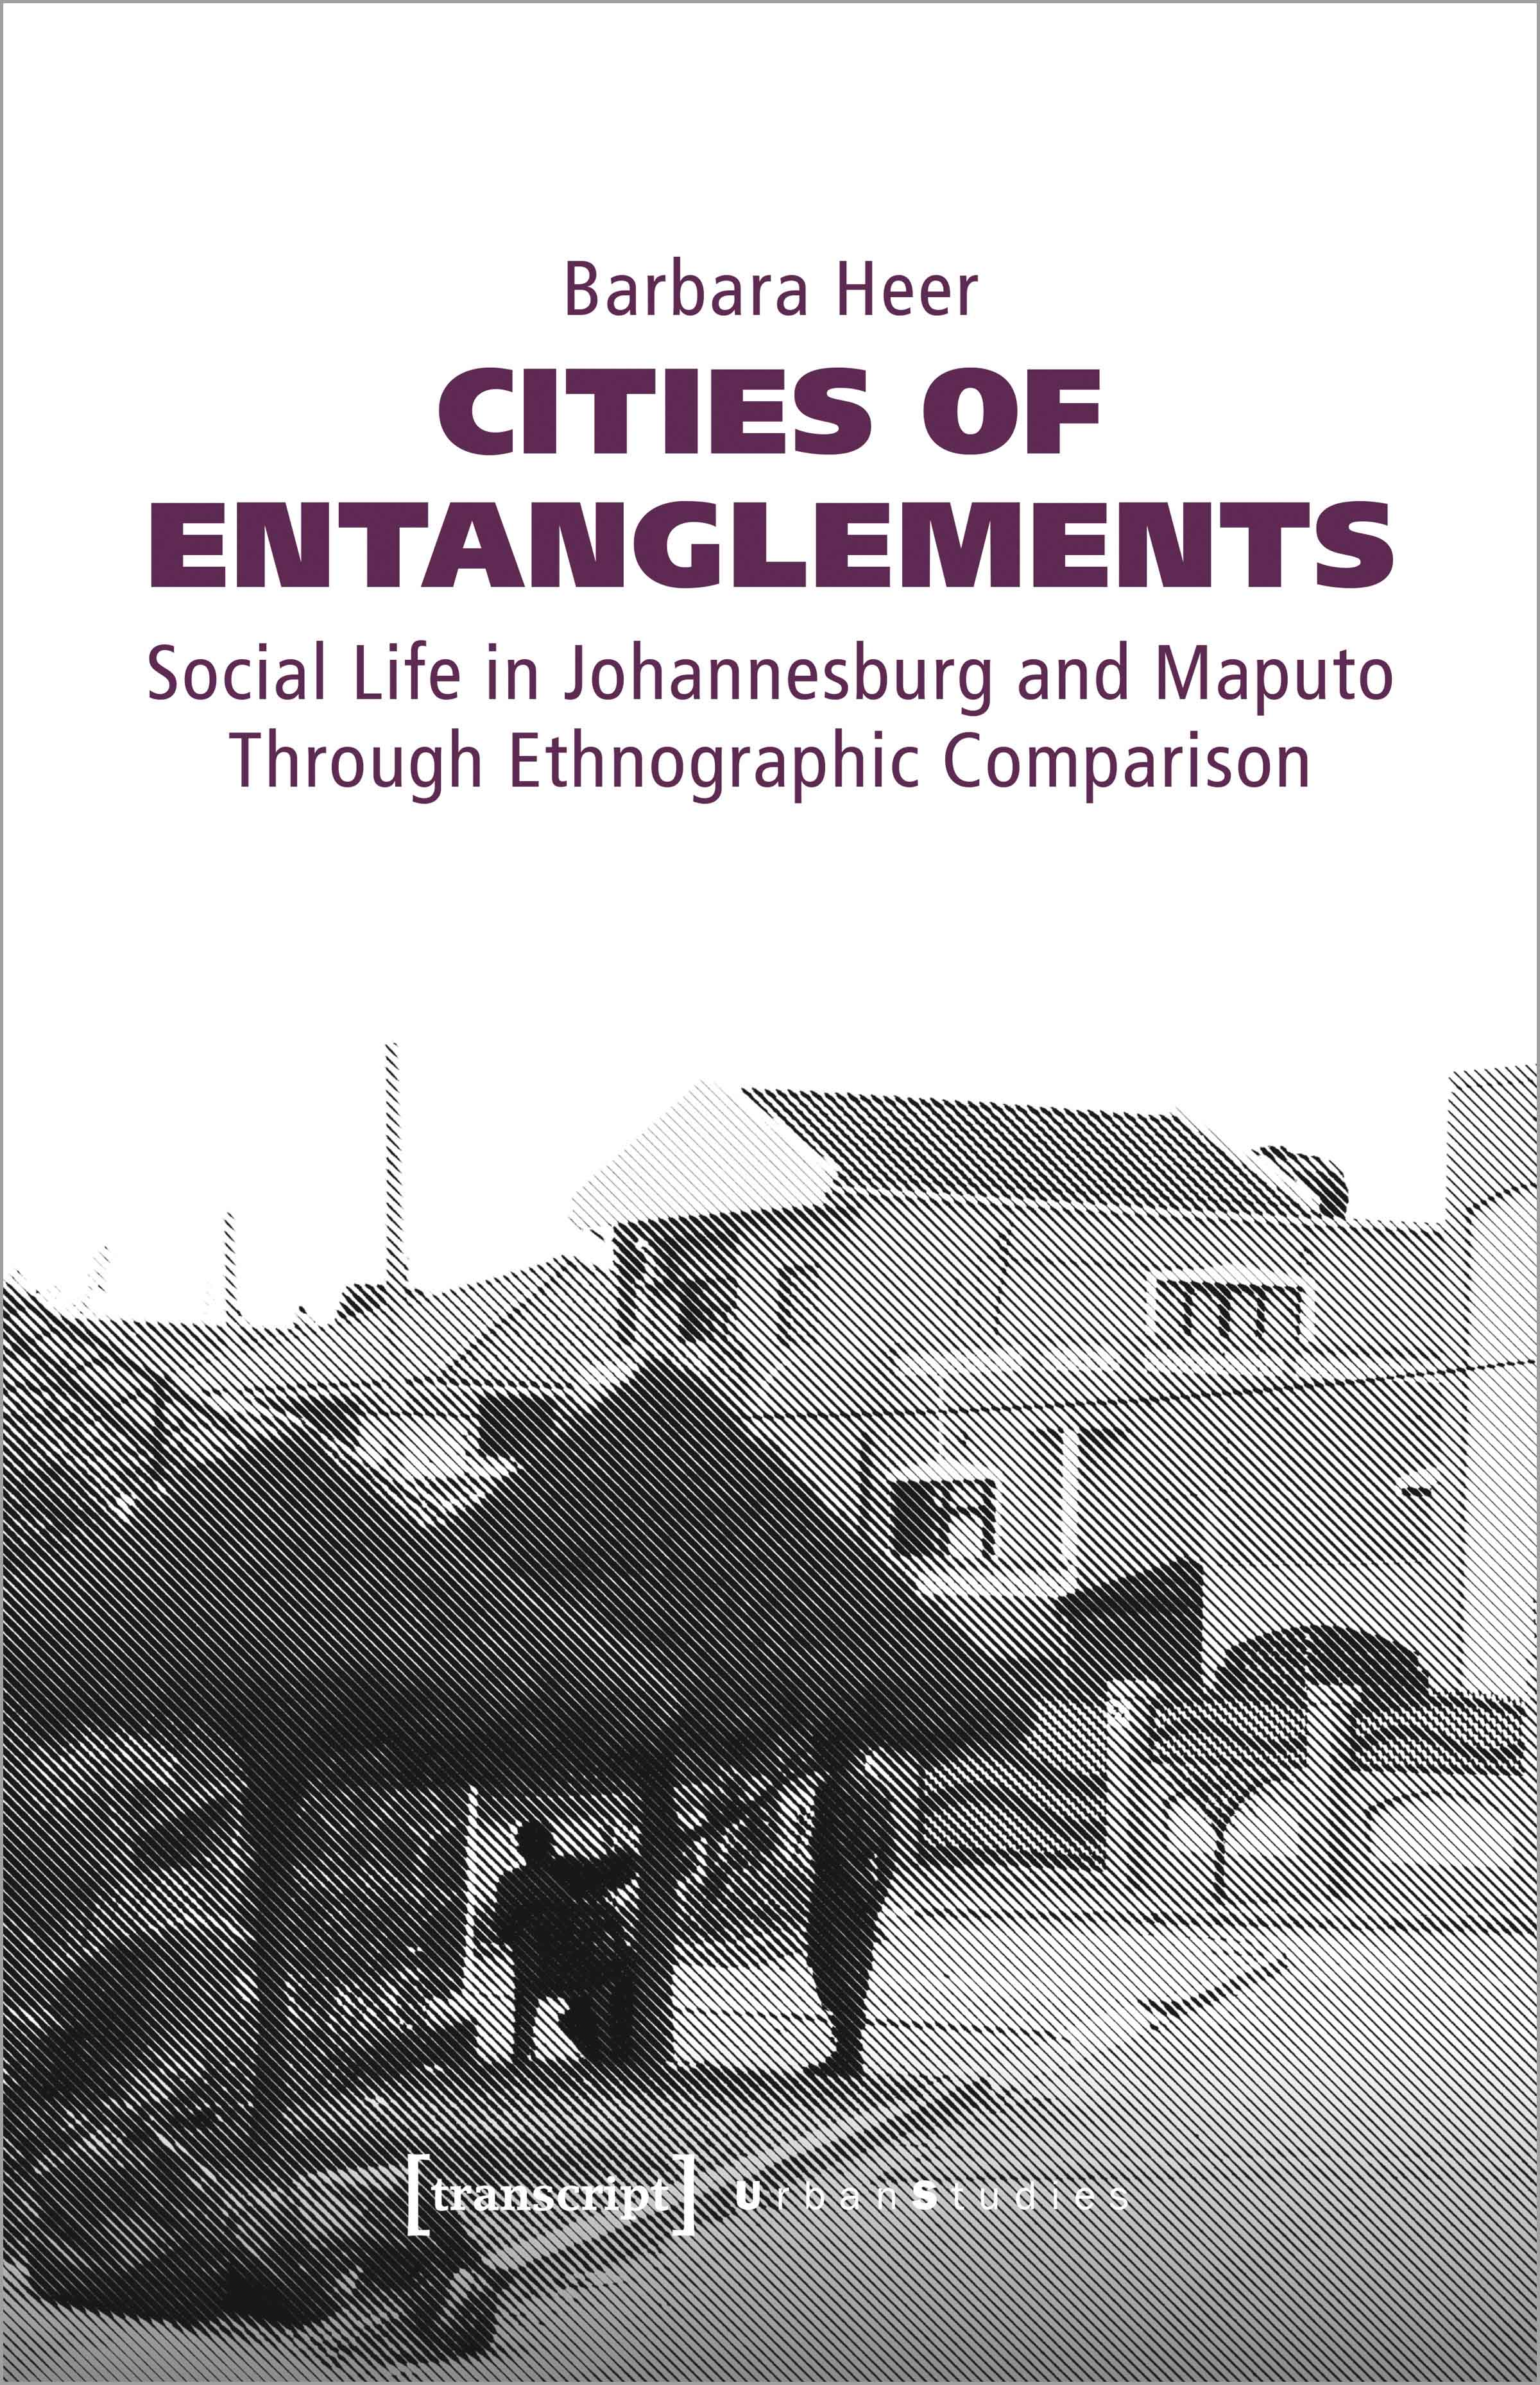 Cities of Entanglements Barbara Heer